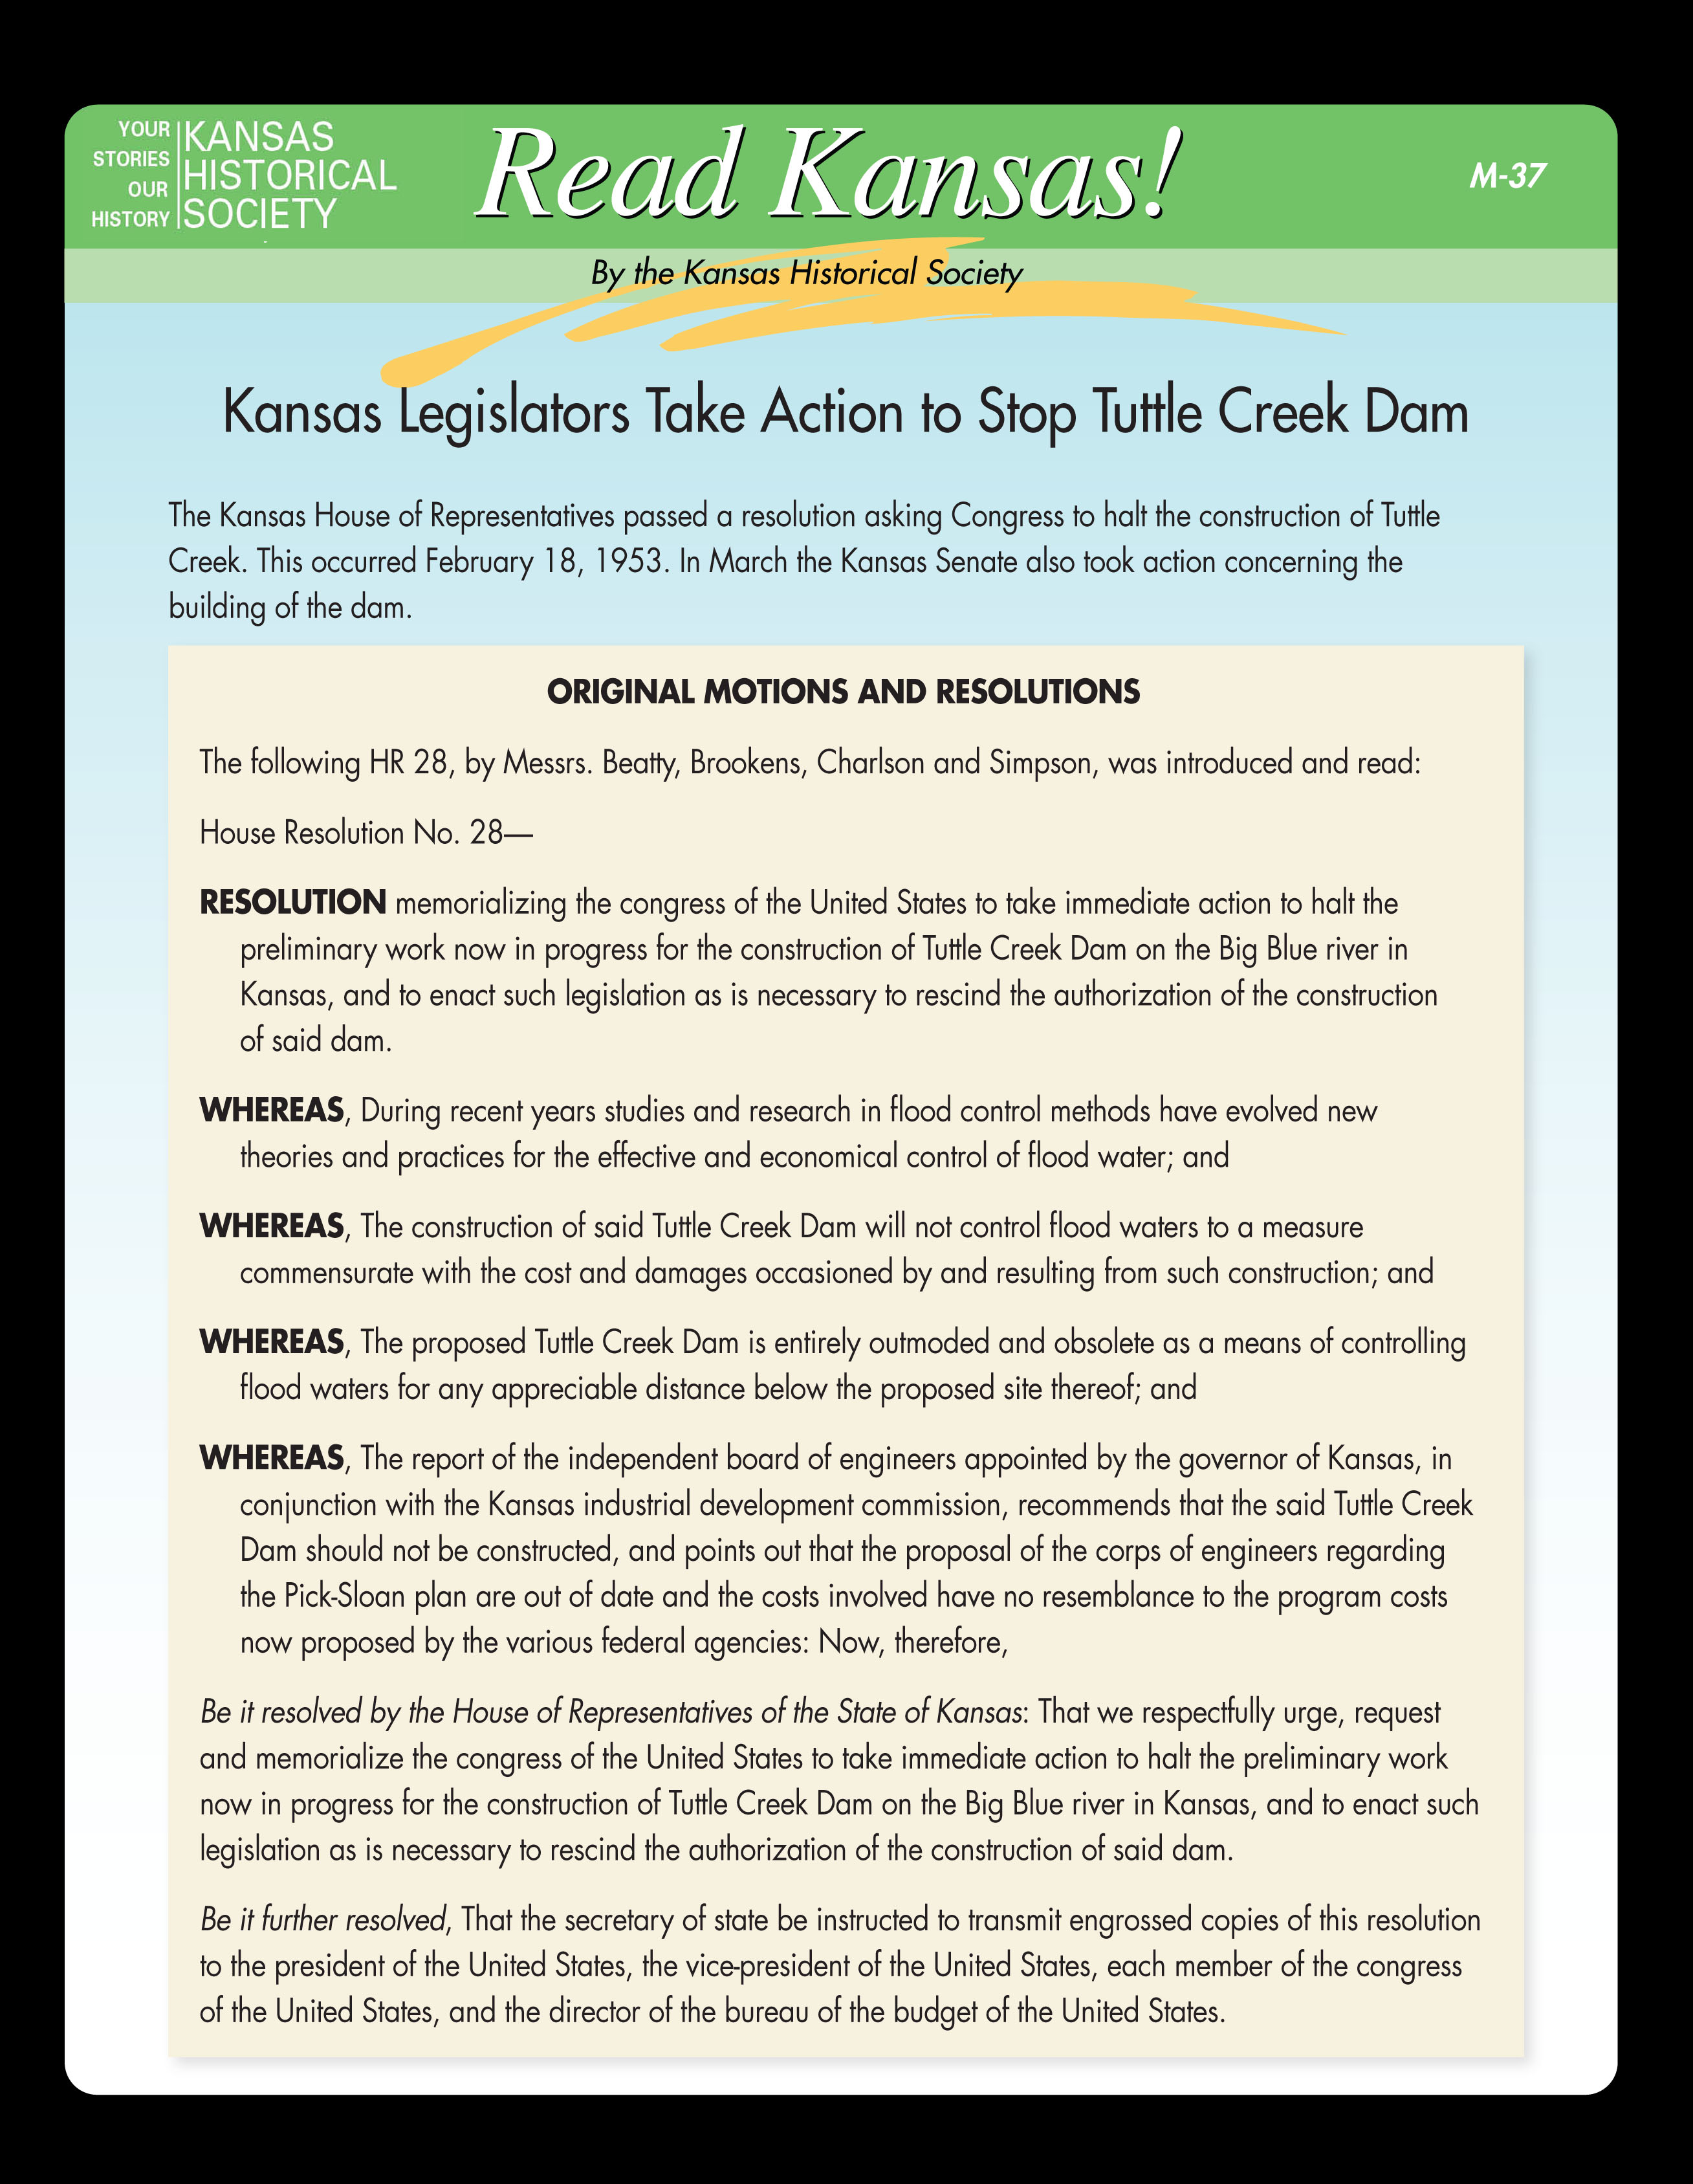 M-37 Kansas Legislators Take Action to Stop Tuttle Creek Dam